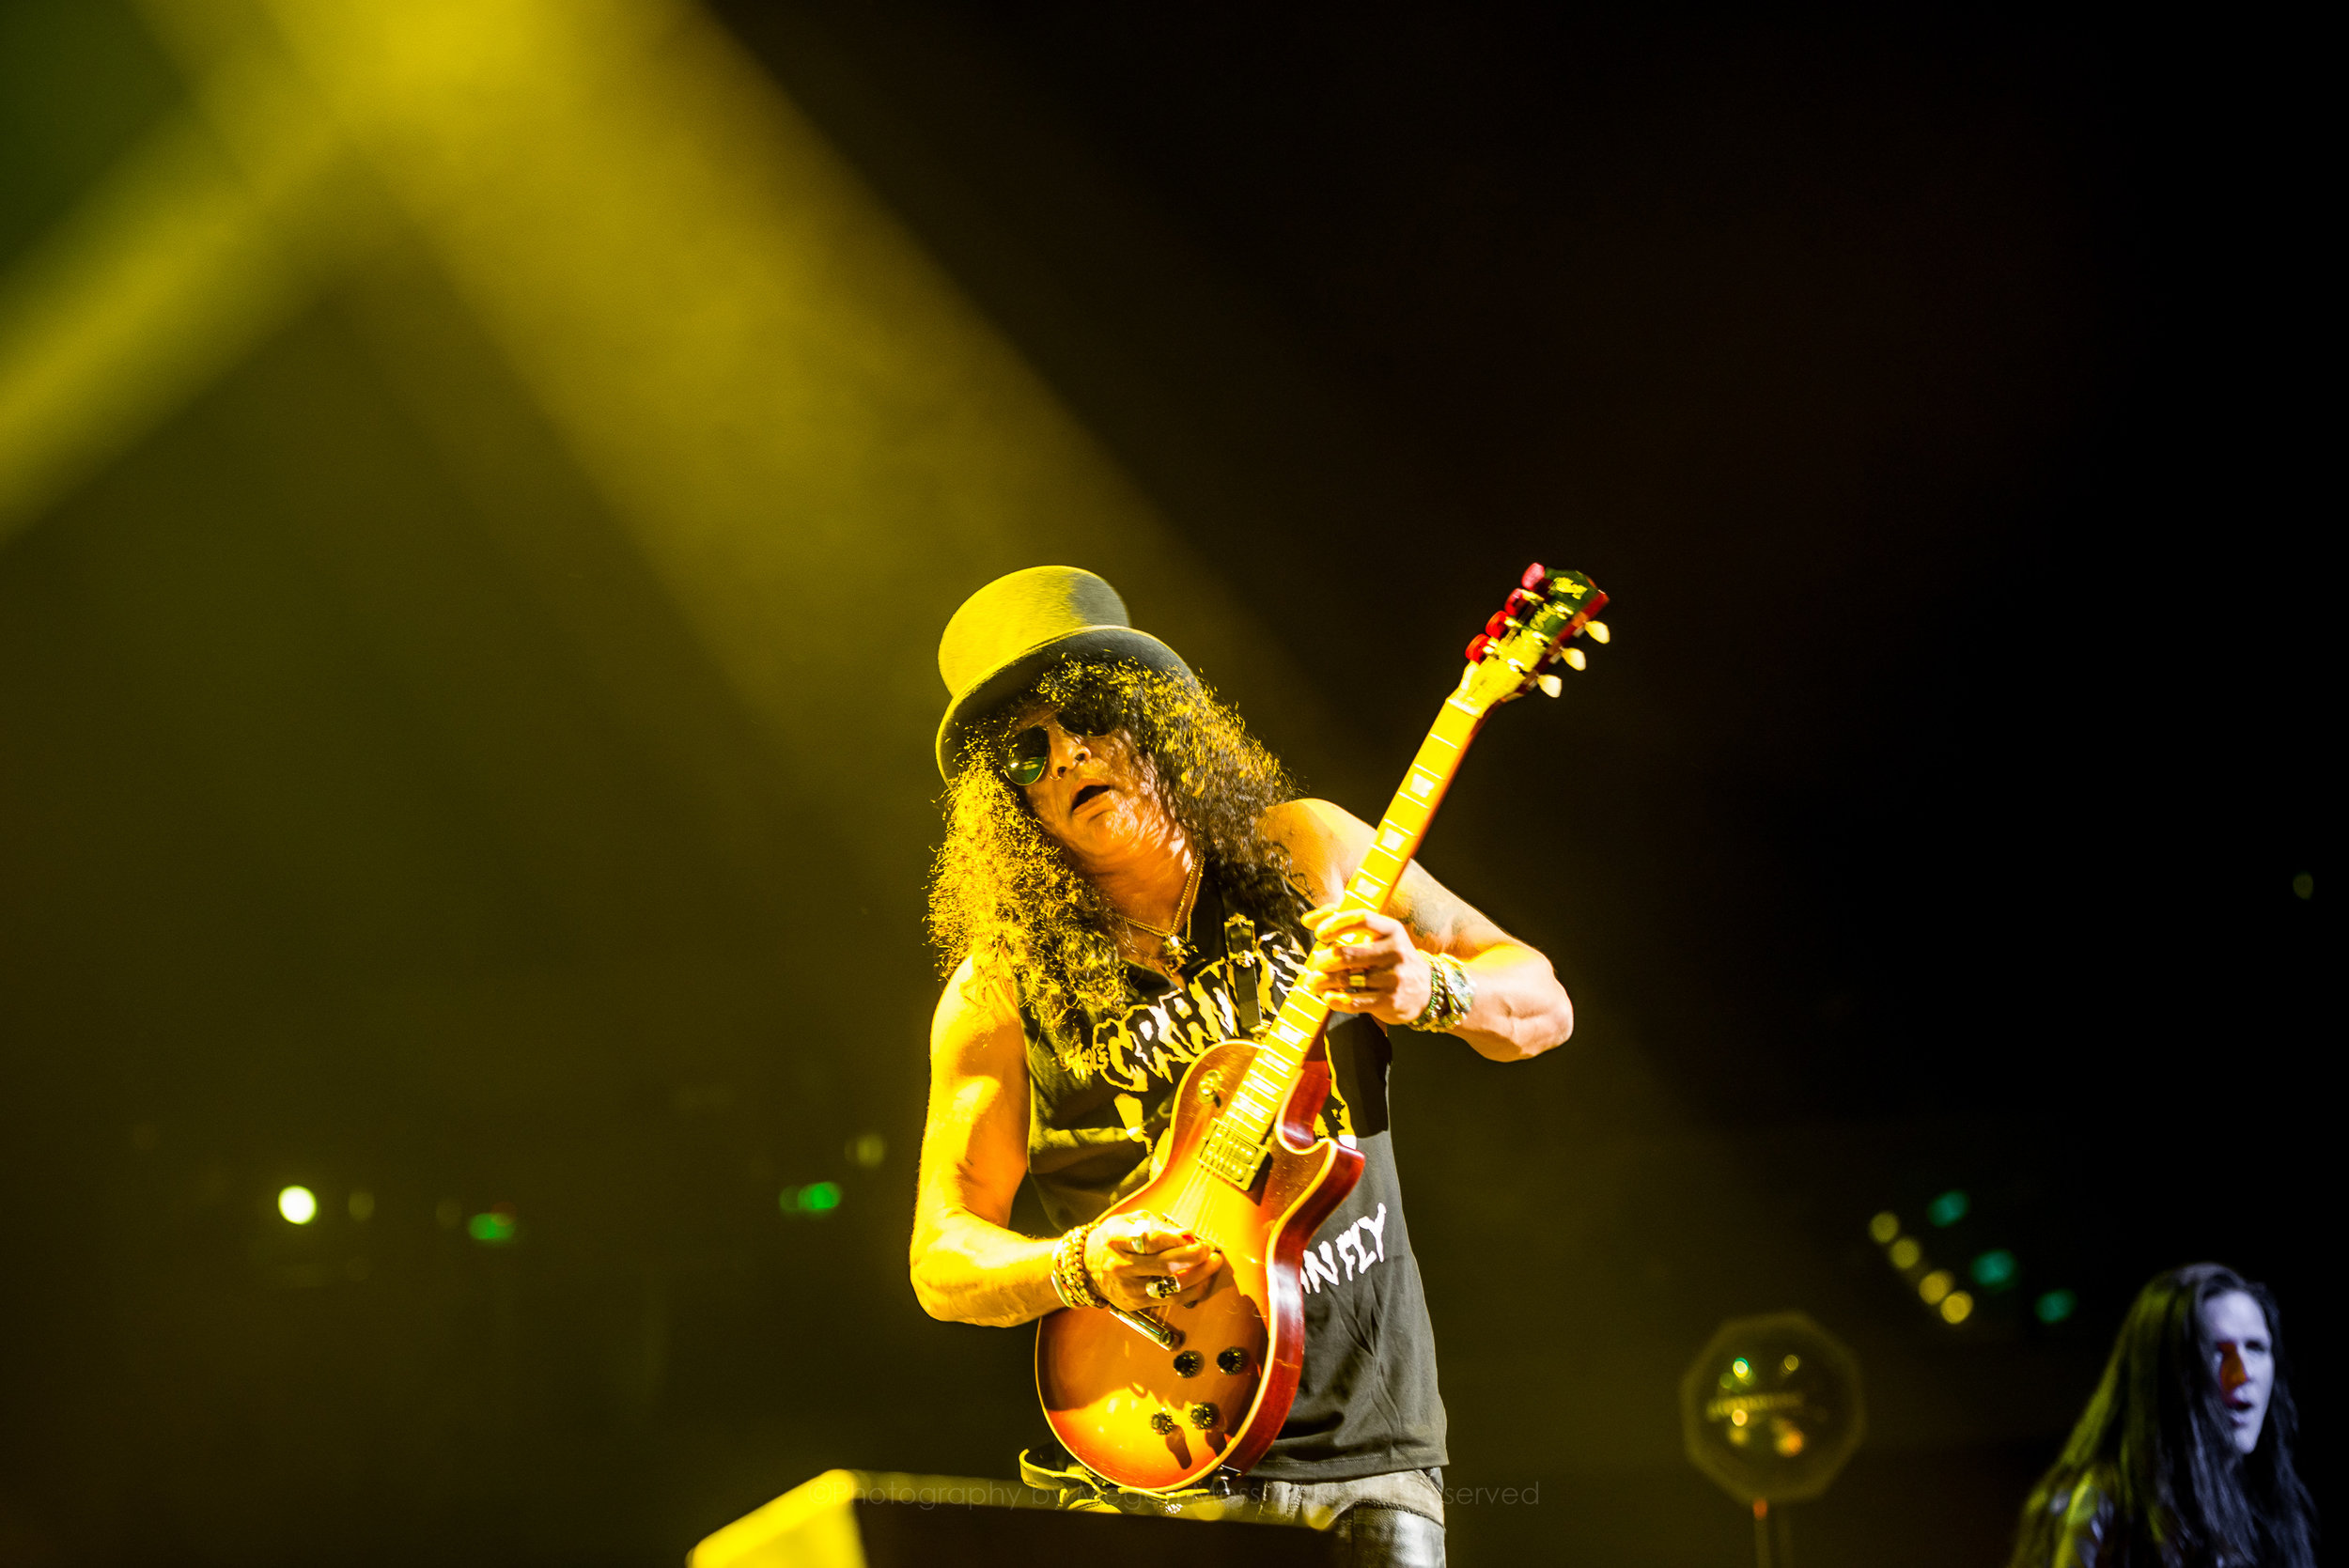 Concert Review: Slash with Myles Kennedy & The Conspirators